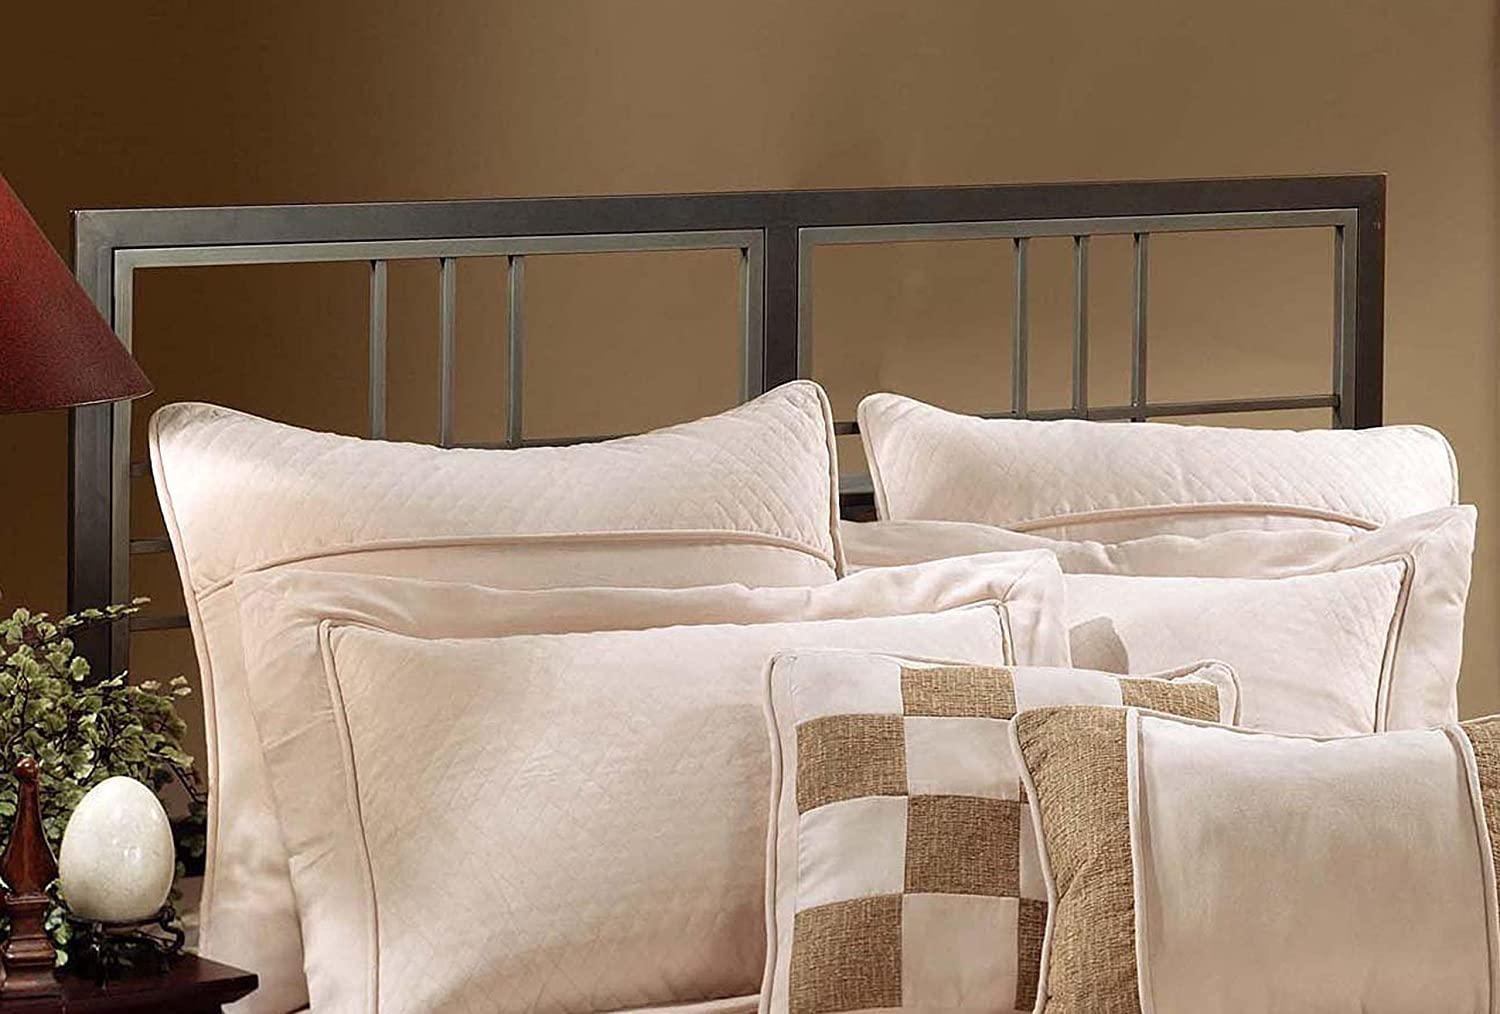 Hillsdale Hillsadale Furniture Tiburon Without Bed Frame Twin Headboard, Magnesium Pewter